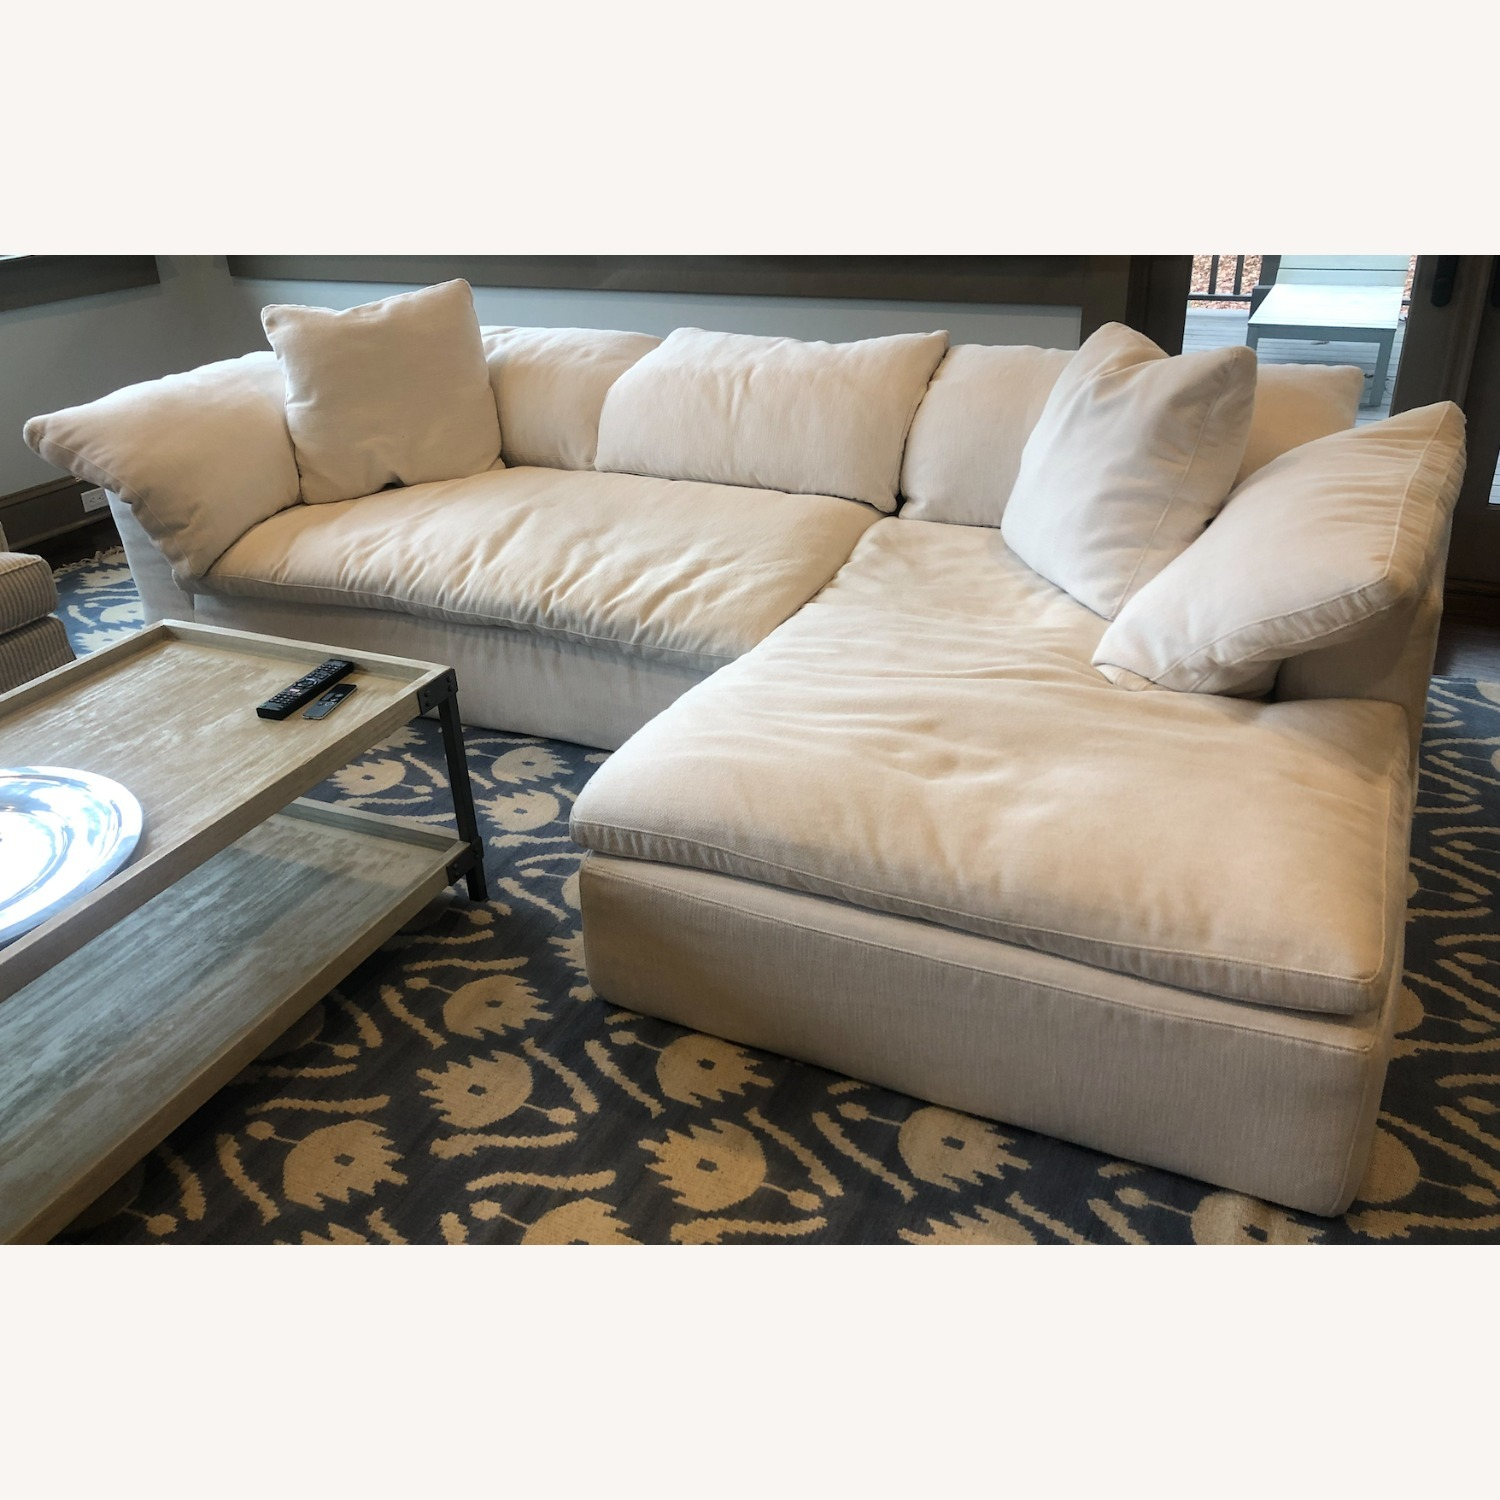 Restoration Hardware Cloud Collection Sectional - image-1